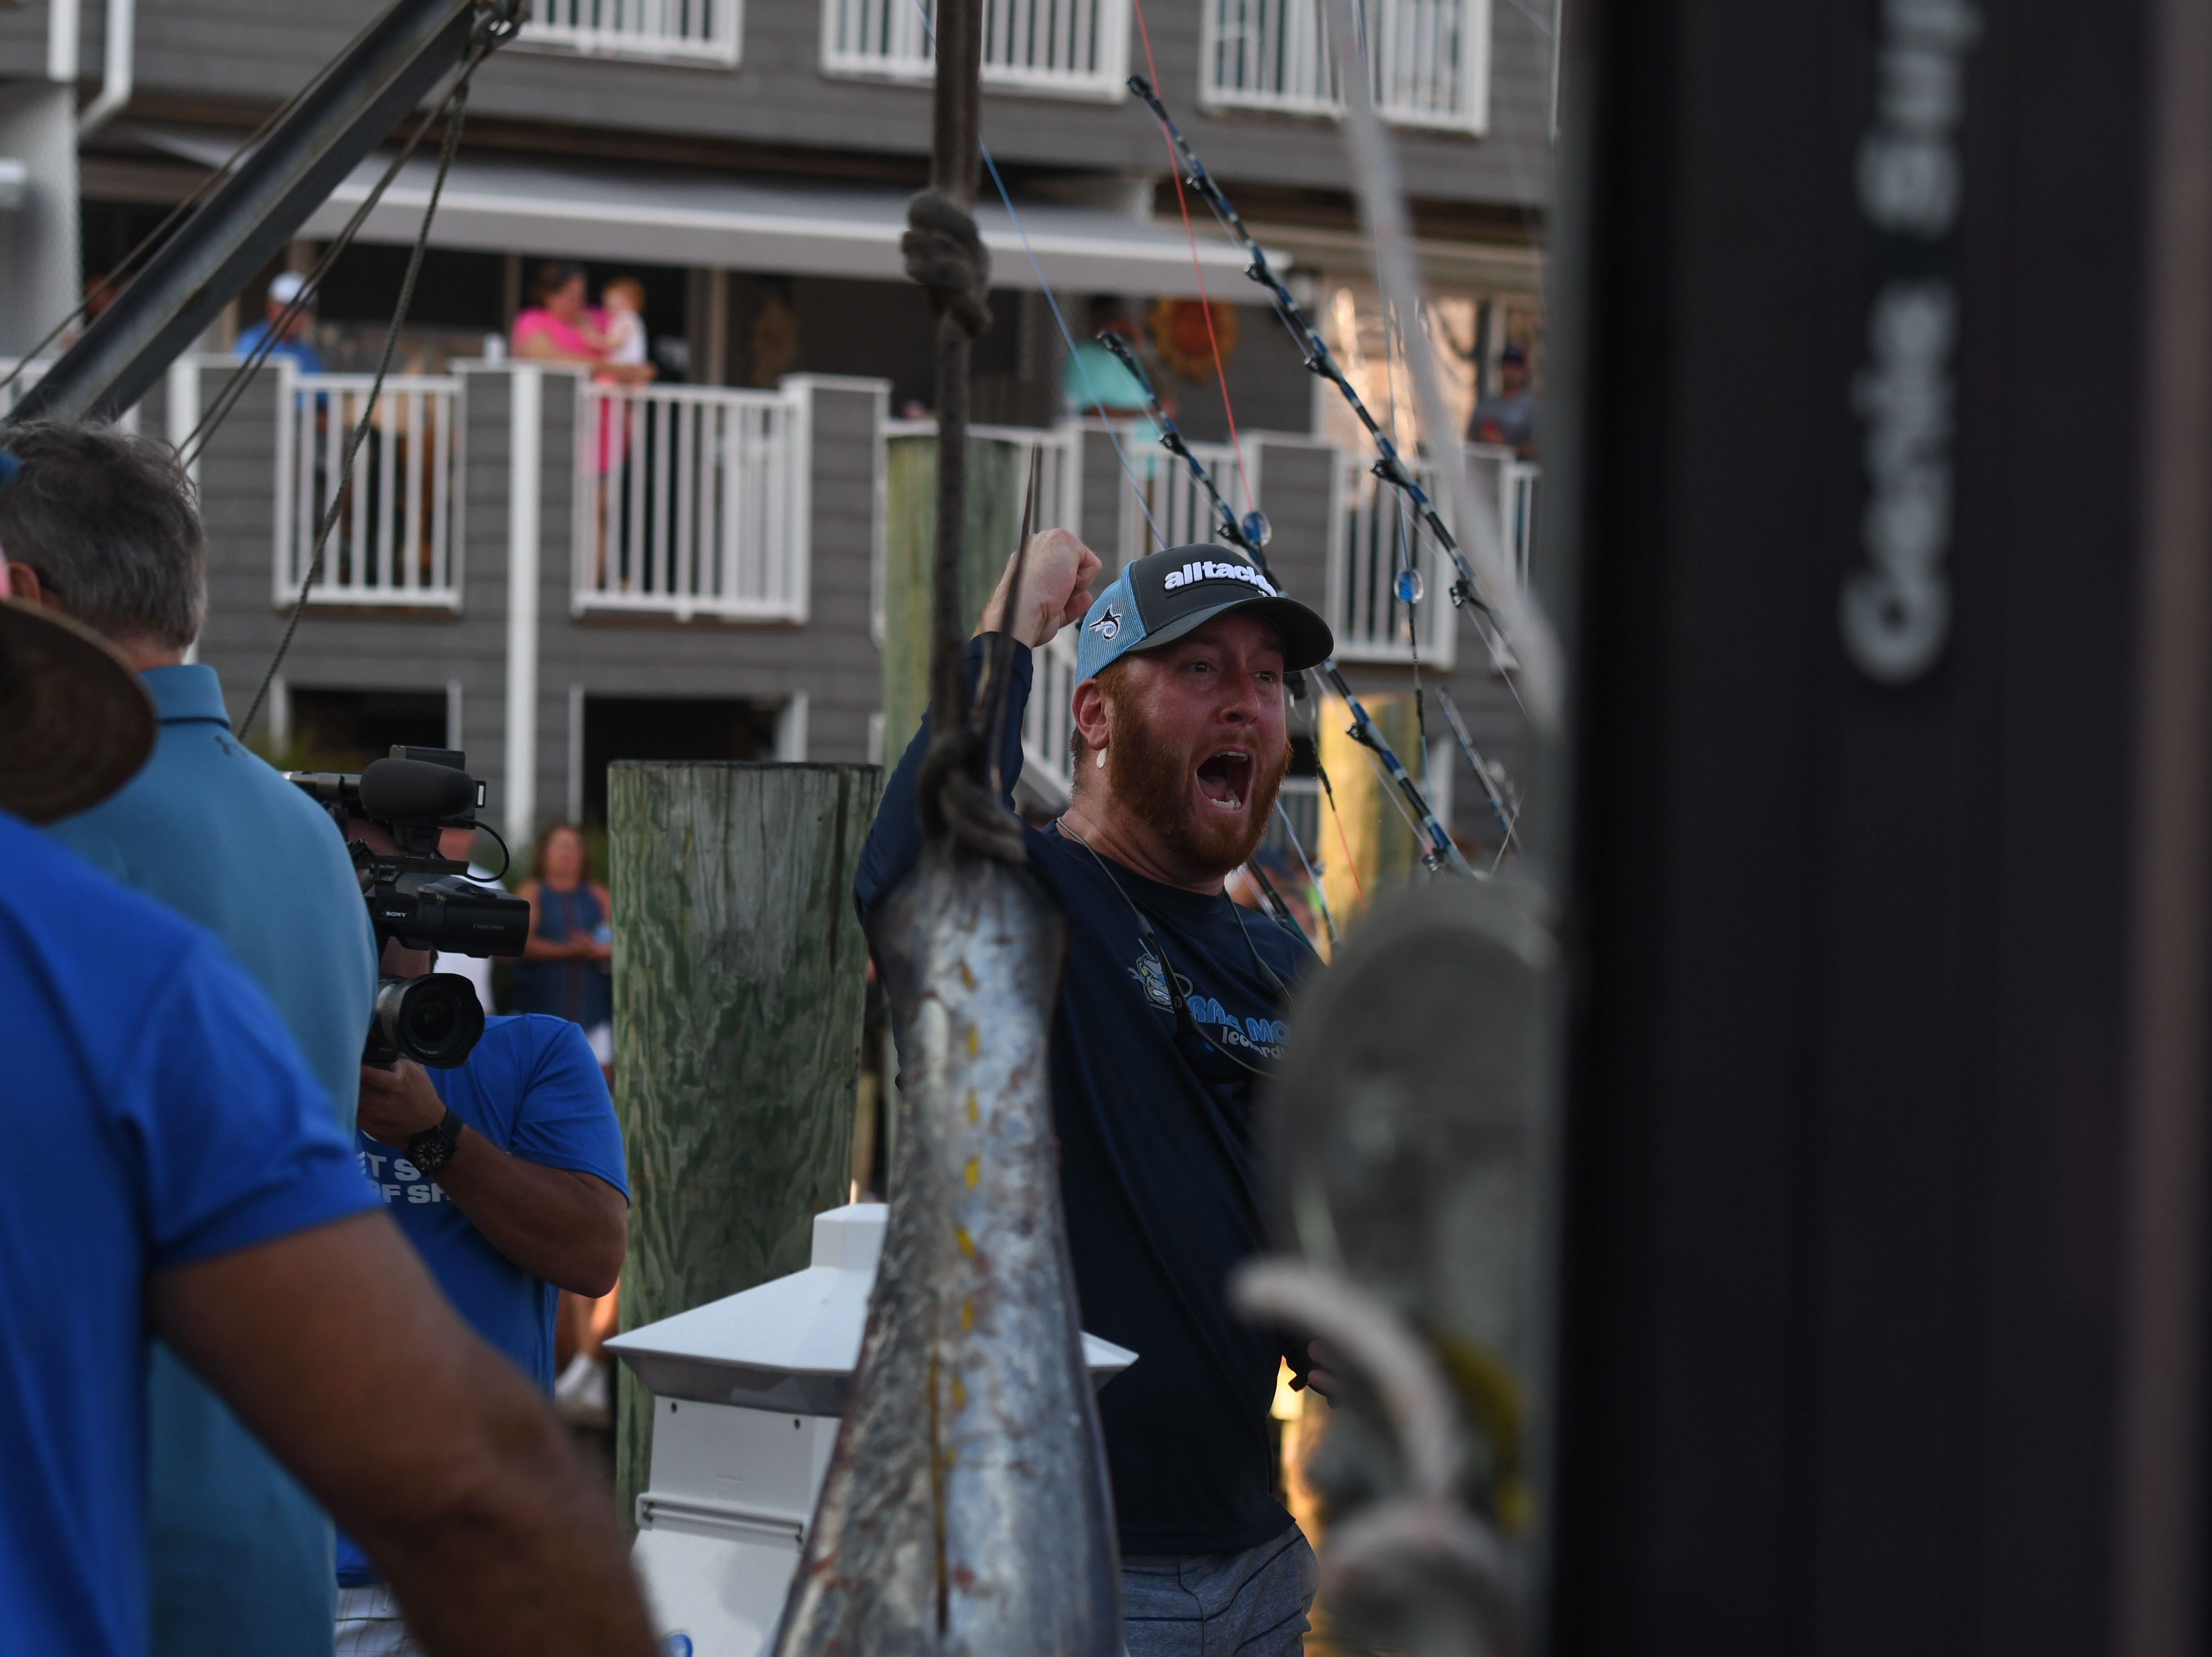 A crew member from aboard the Brass Monkey cheers as their 71lb tuna takes over first place on Monday, August 6, 2018 during the 45th Annual White Marlin Open in Ocean City, Md.